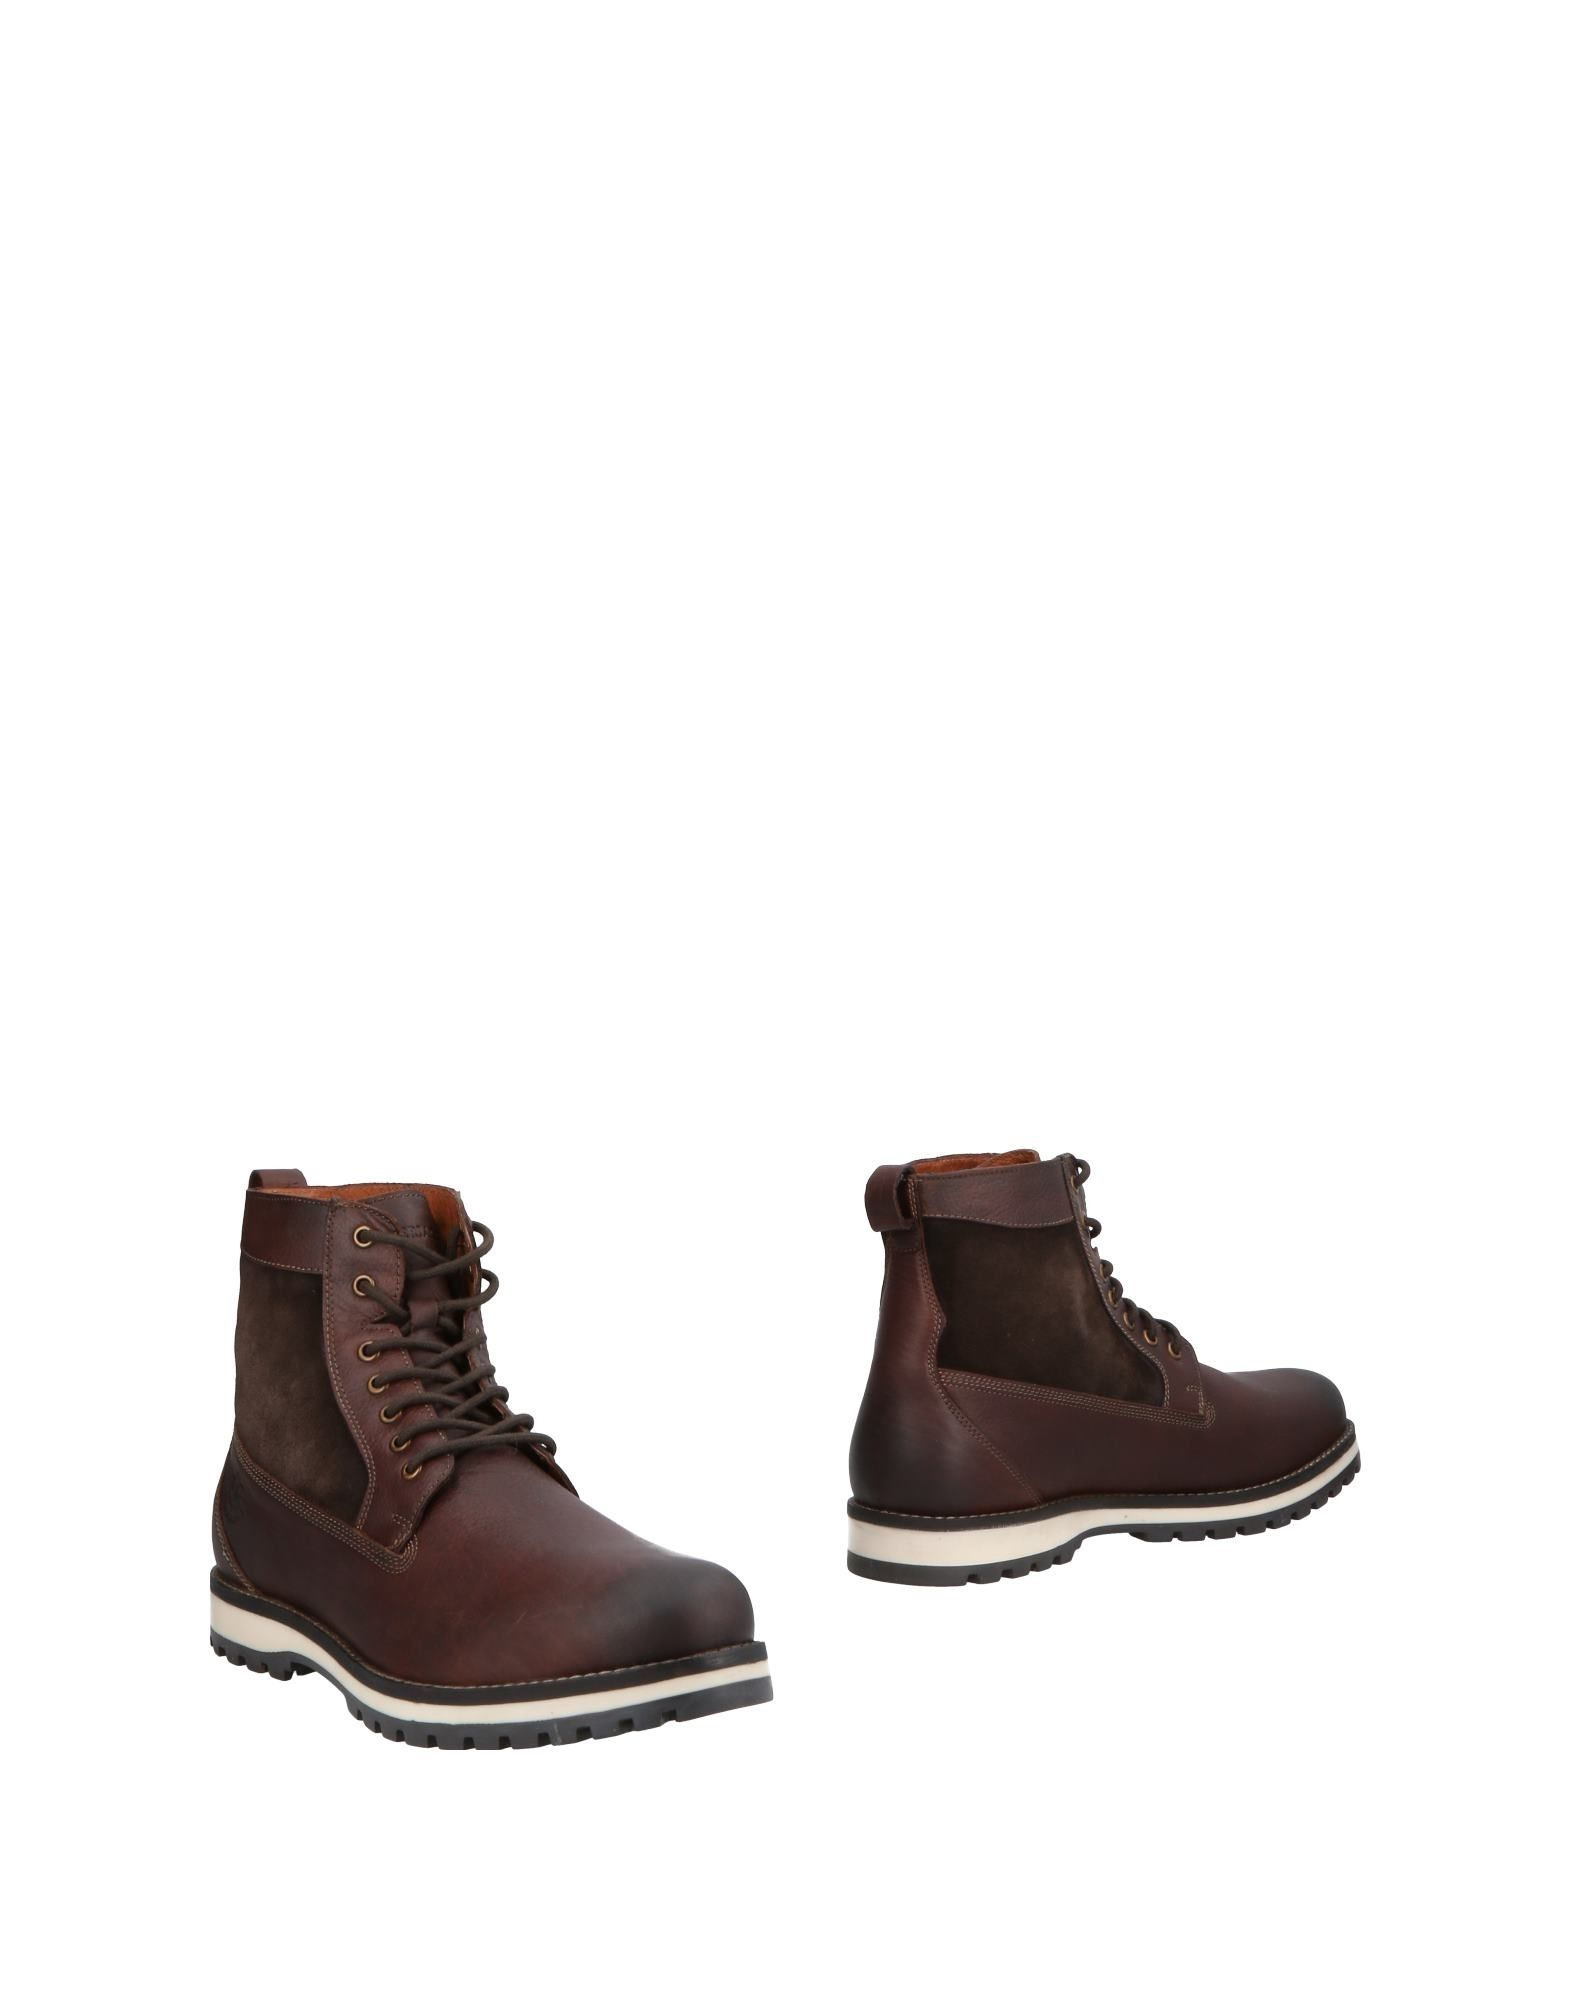 Lumberjack Boots - Men Men Men Lumberjack Boots online on  United Kingdom - 11505629LU 1adf9d